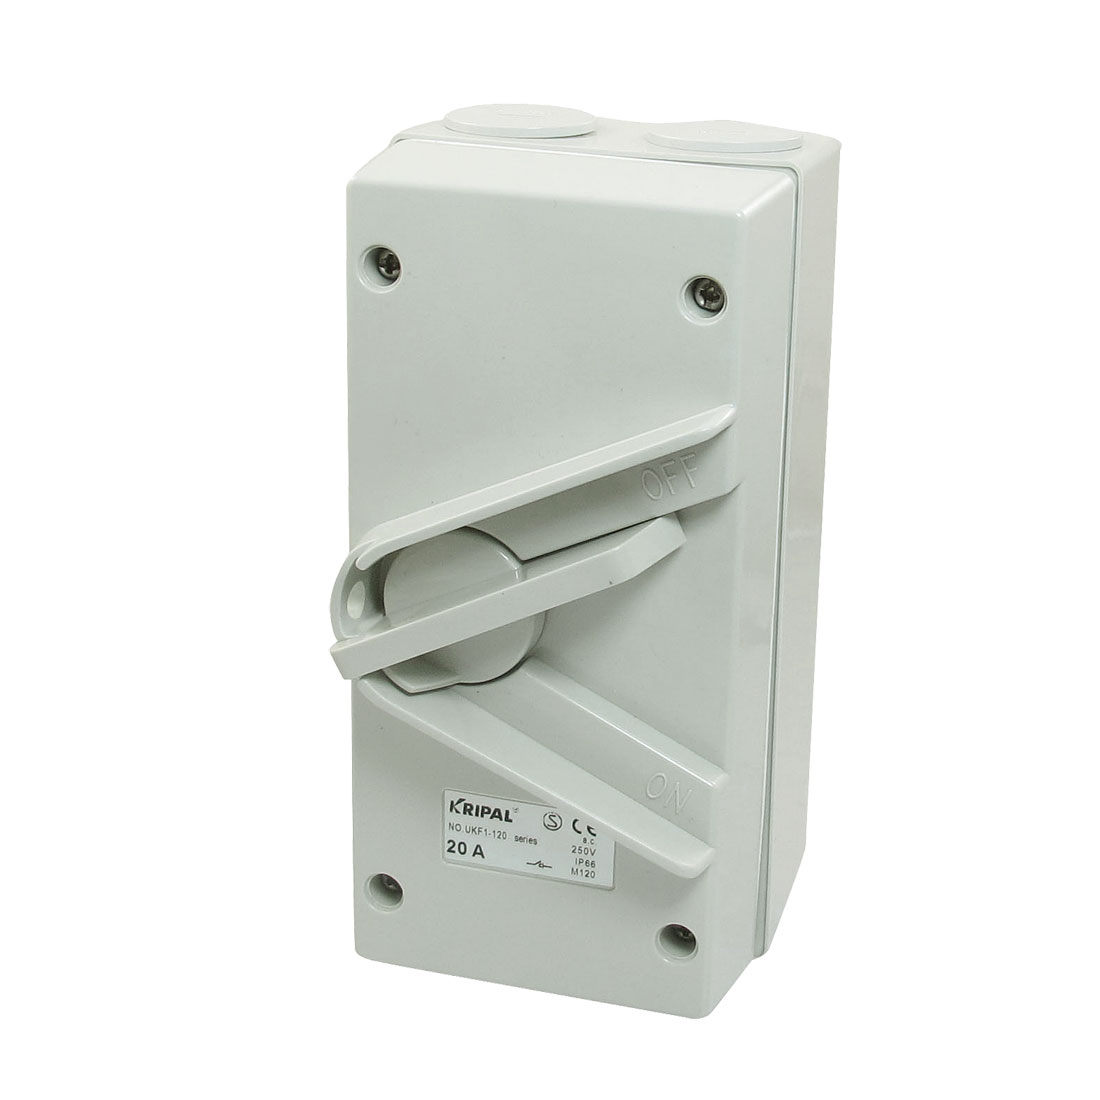 AC 250V 20A IP66 2-Postion OFF/ON SPST UKF1-120 Weatherproof Isolating Switch